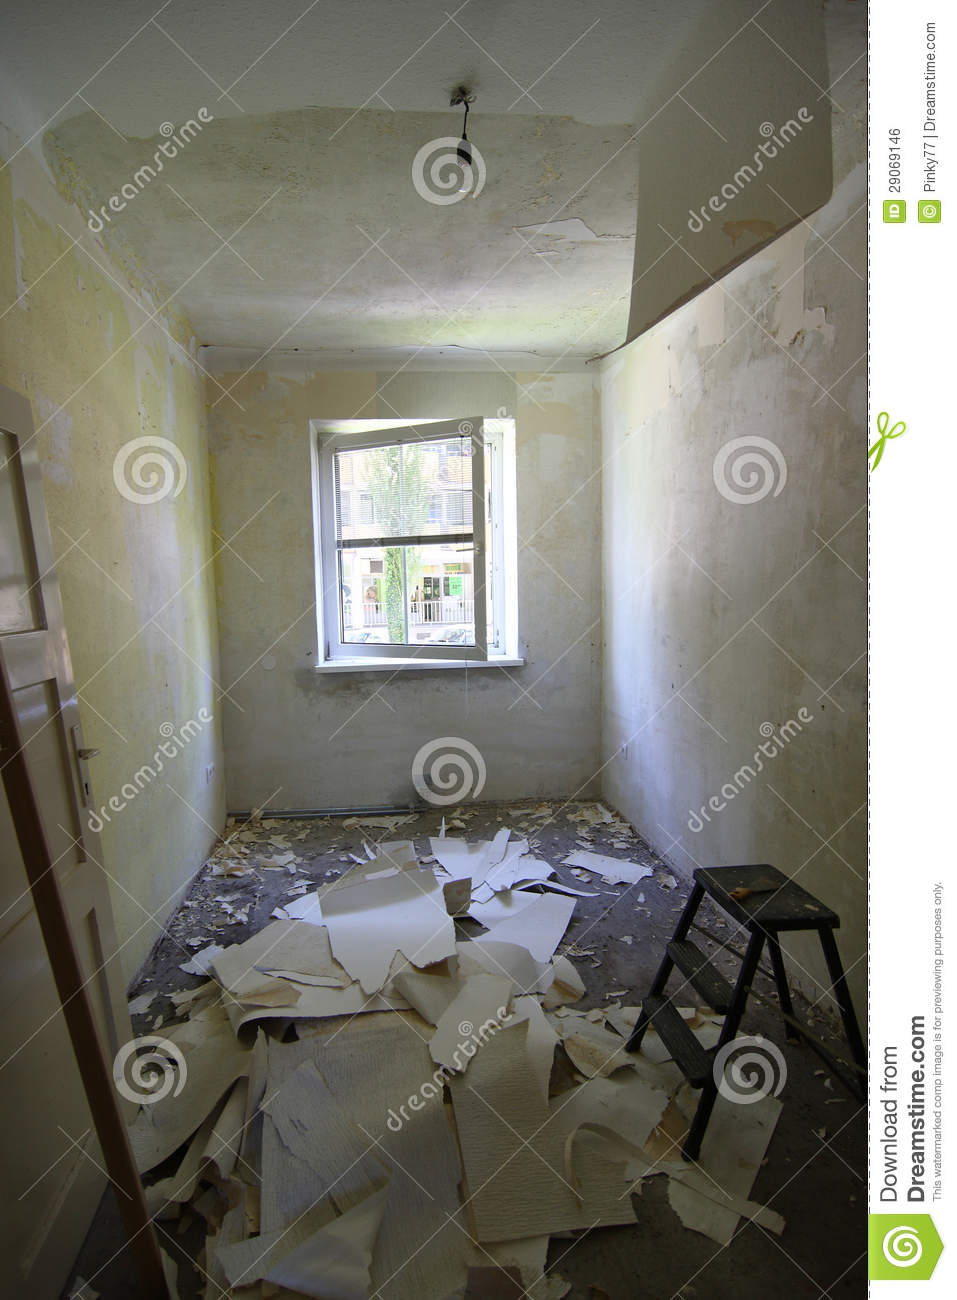 Rundown apartment stock photo. Image of dirty, estate ...